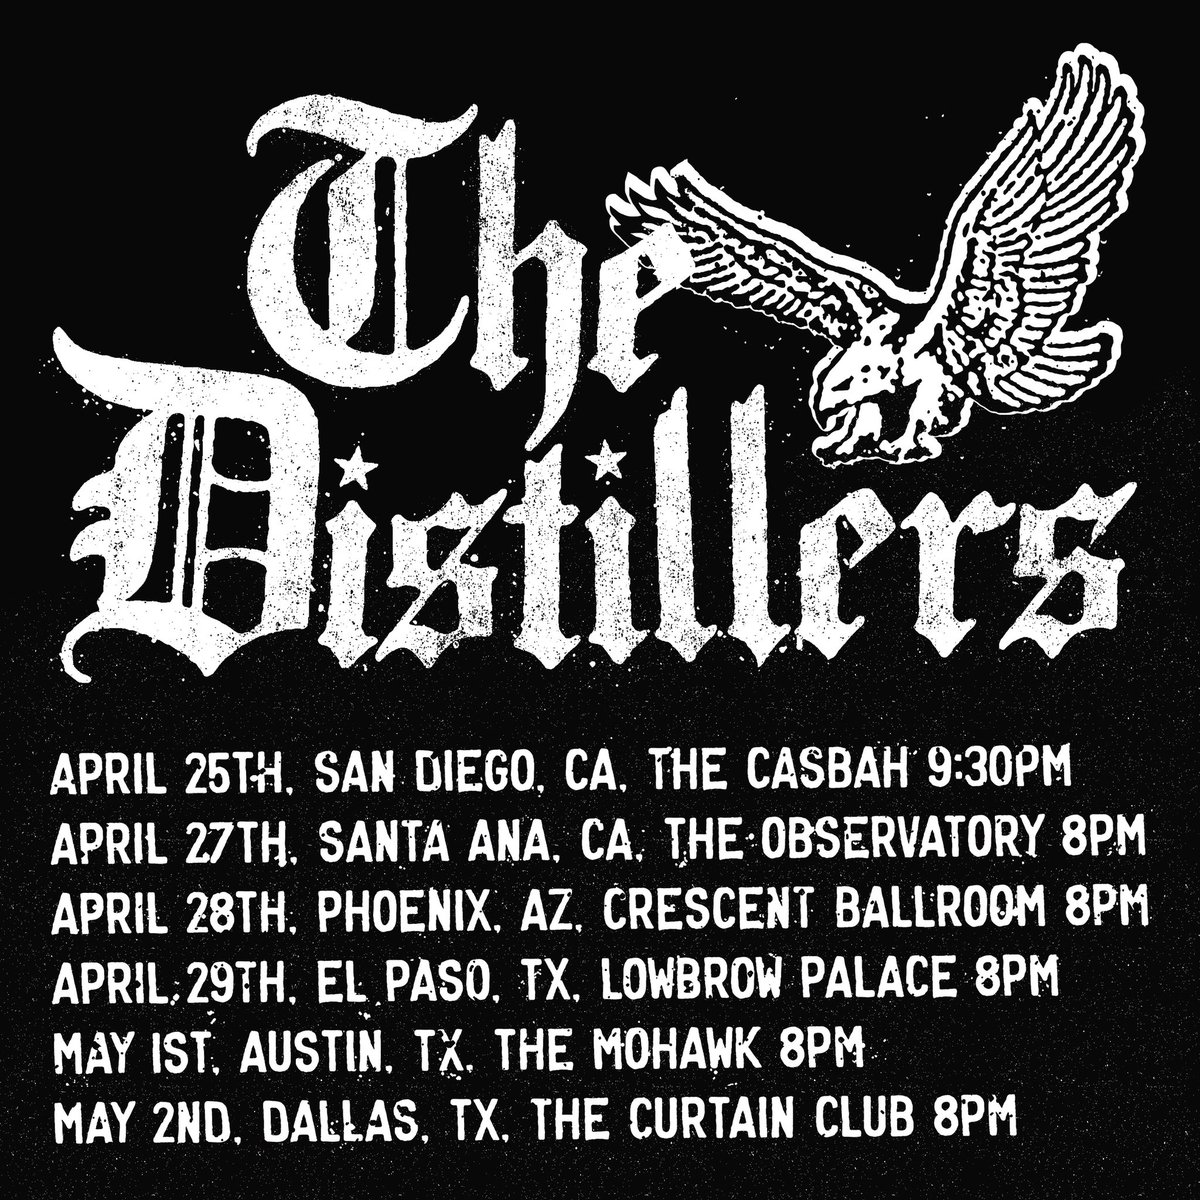 Spring Musical 2018: The Distillers Announce Spring 2018 Reunion Tour Dates